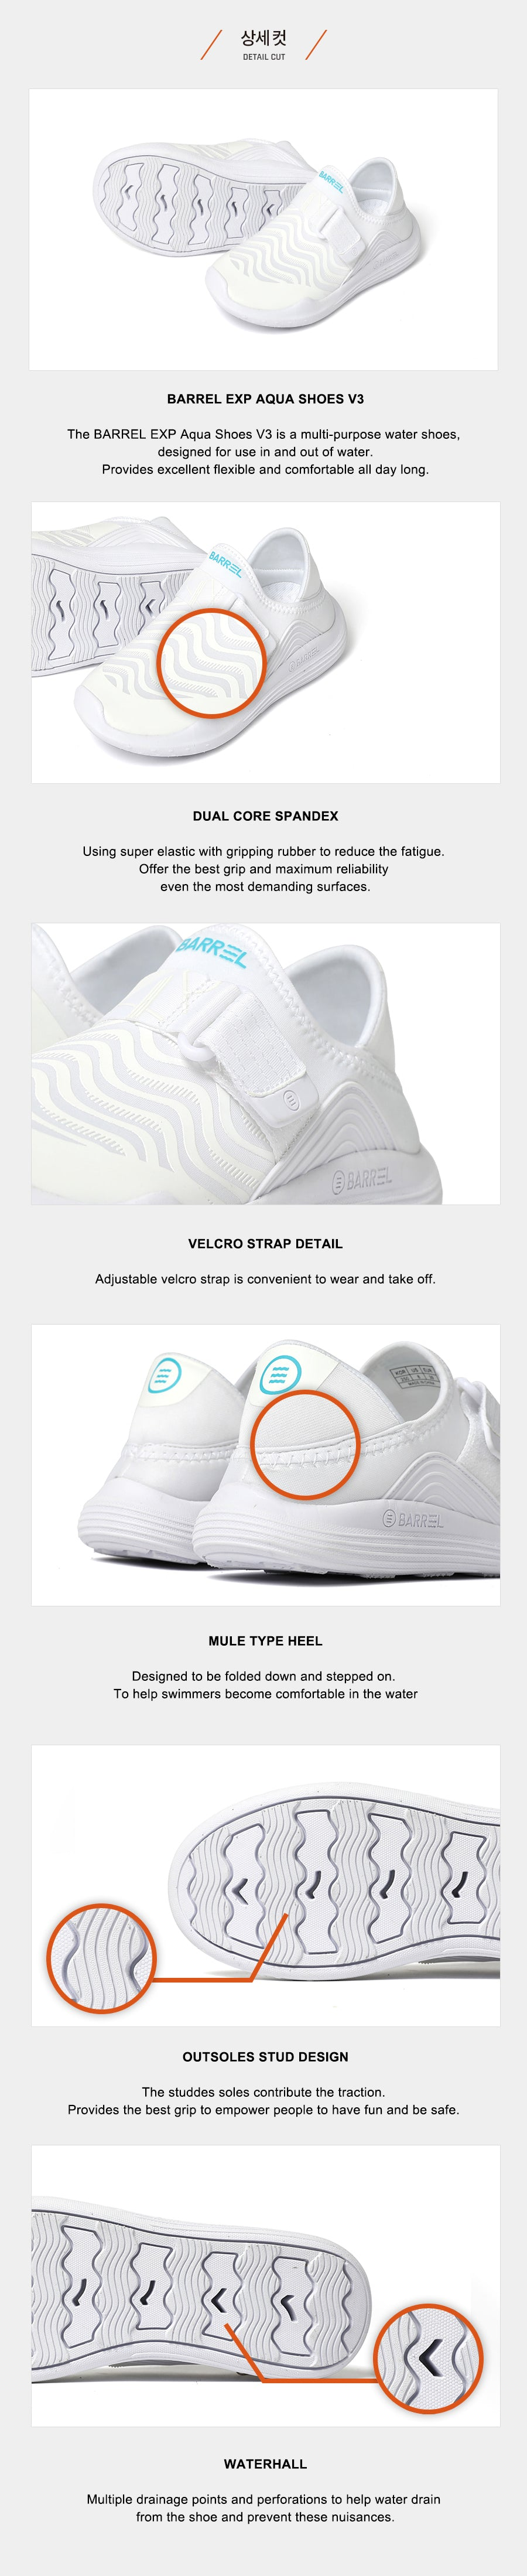 Barrel Kids EXP Aqua Shoes V3-WHITE_details